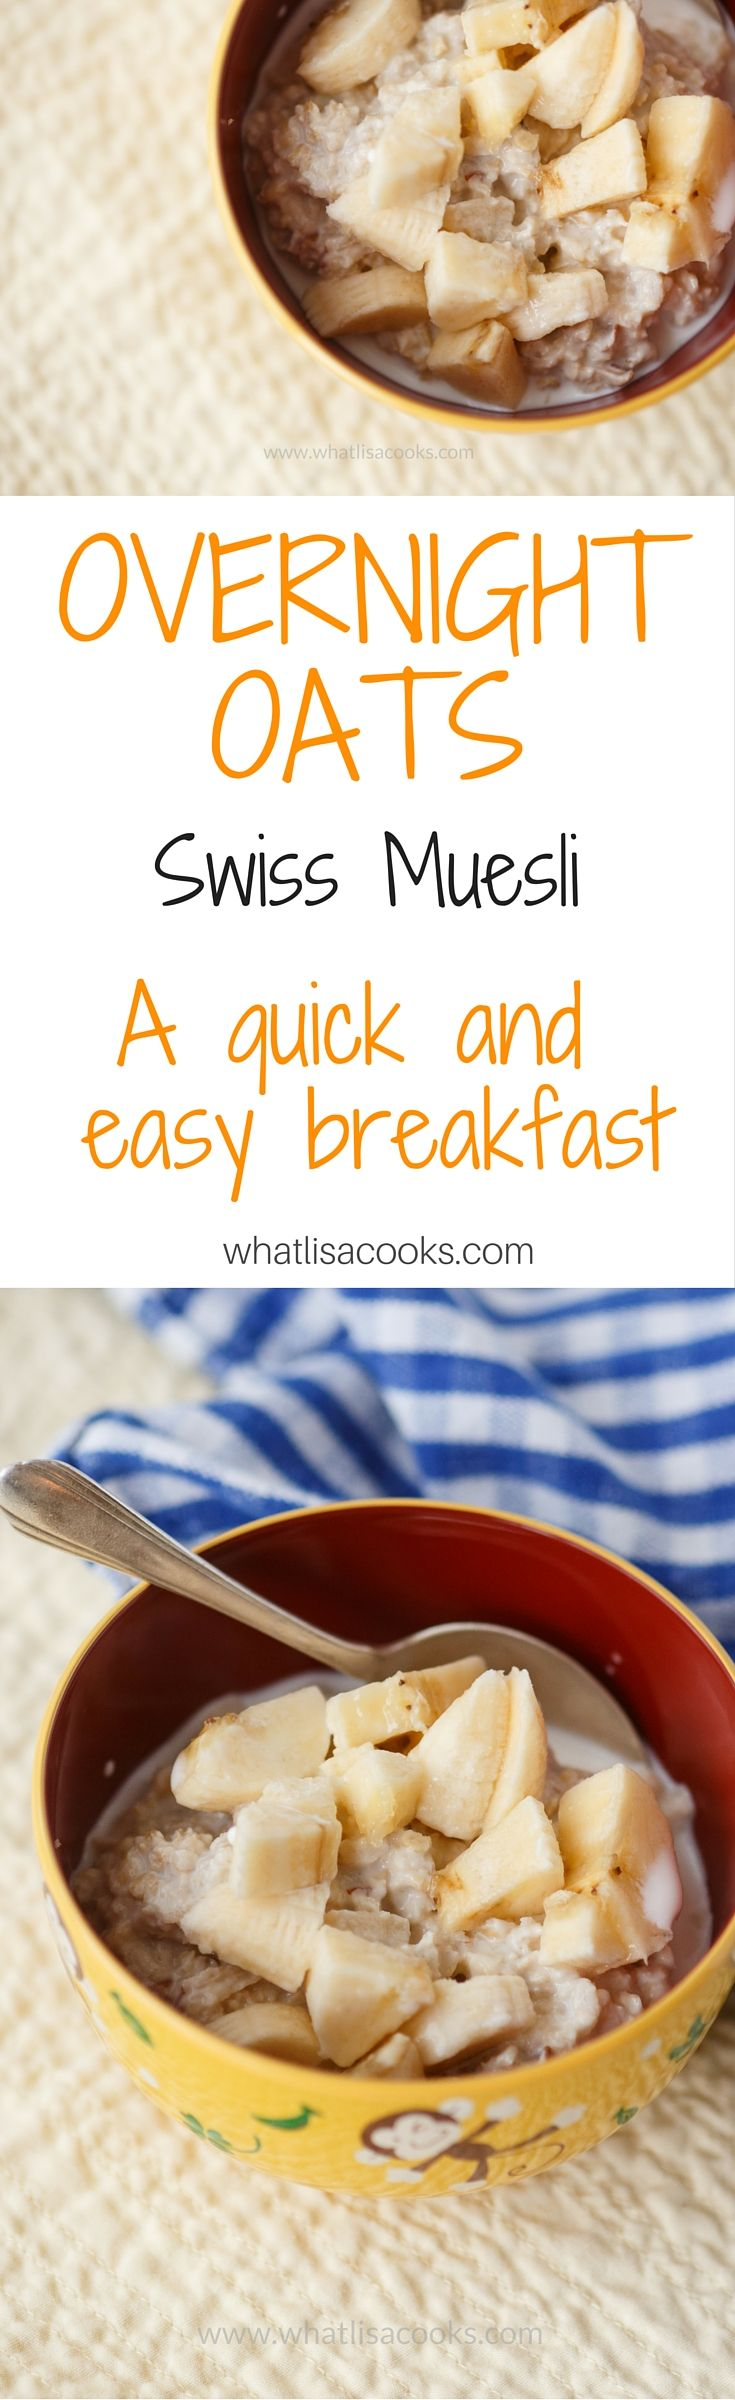 The original overnight oats recipe - Swiss Muesli - an easy breakfast recipe for the family. Packed with protein and fiber. whatlisacooks.com